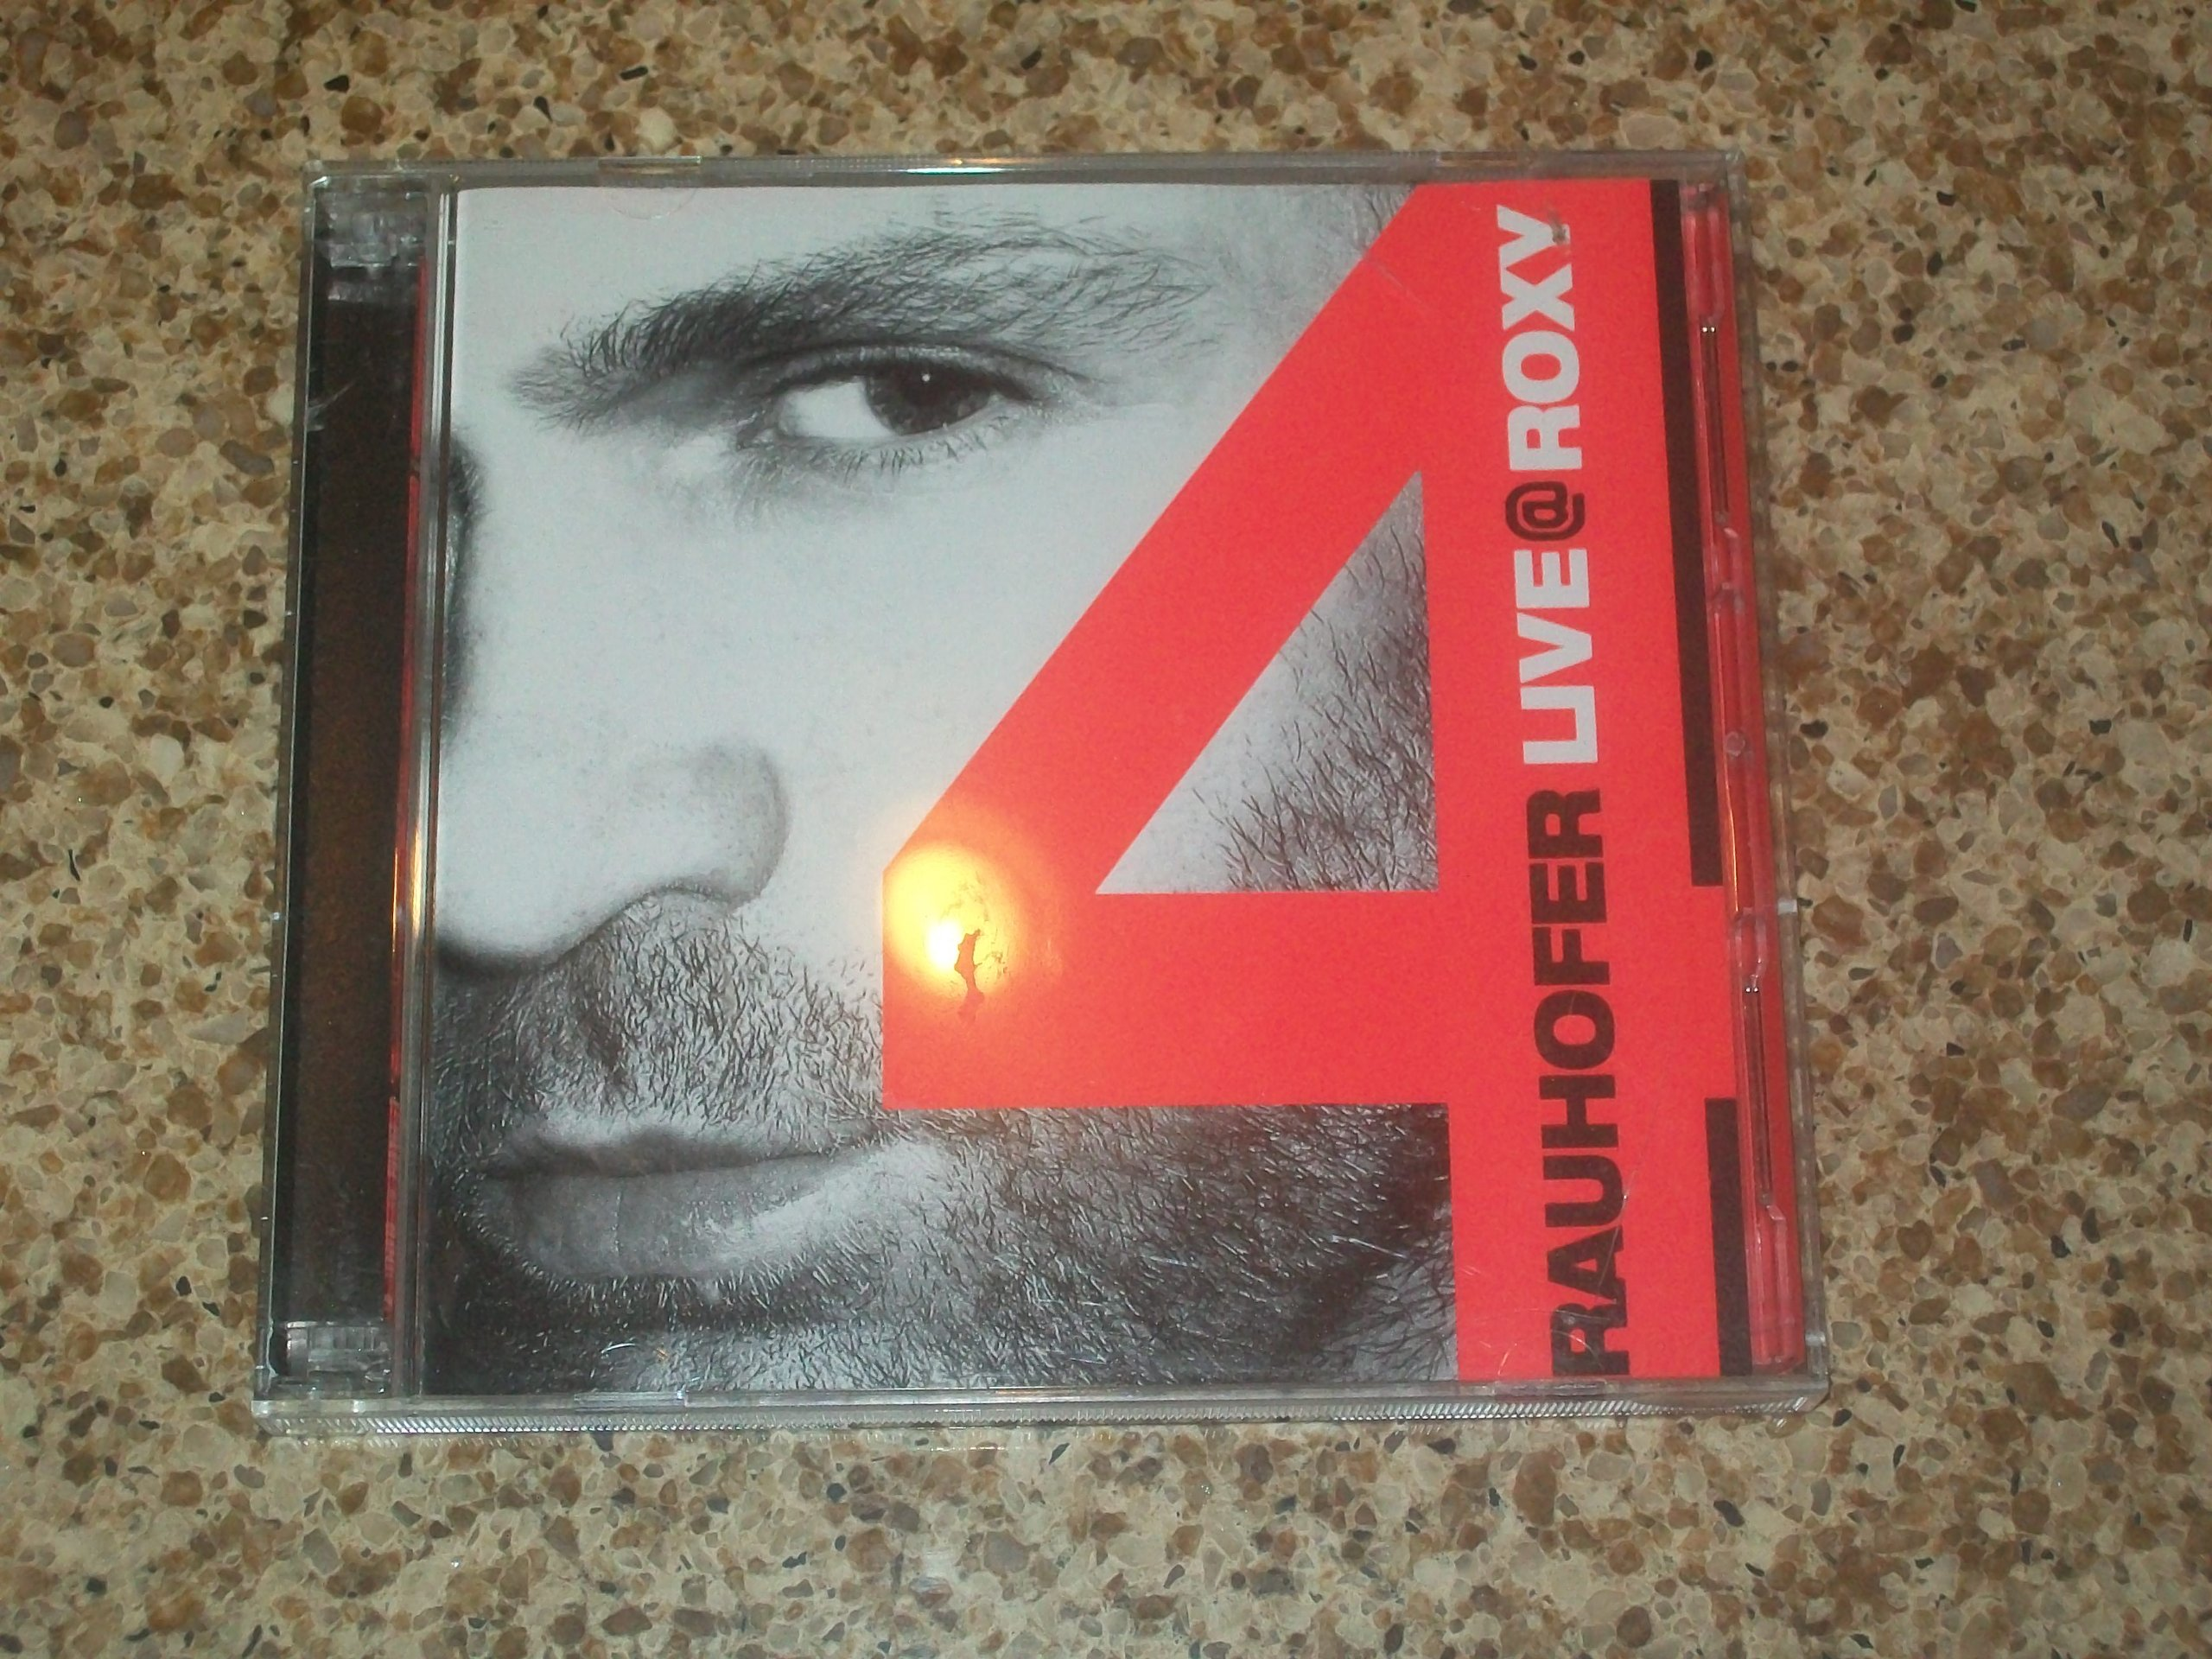 PETER RAUHOFER CD LIVE @ ROXY 4 by